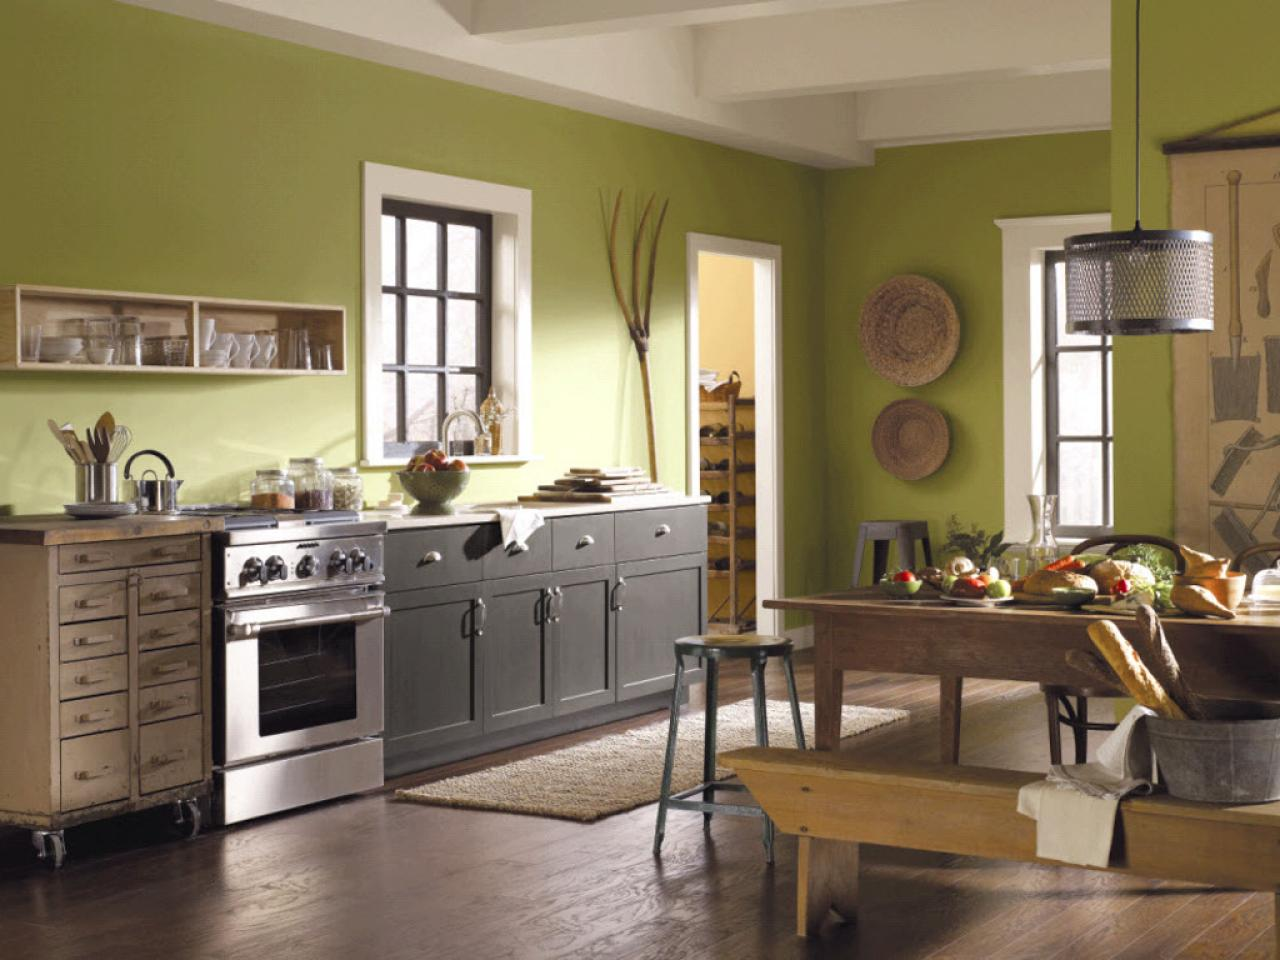 Green kitchen paint colors pictures ideas from hgtv hgtv for Popular kitchen designs